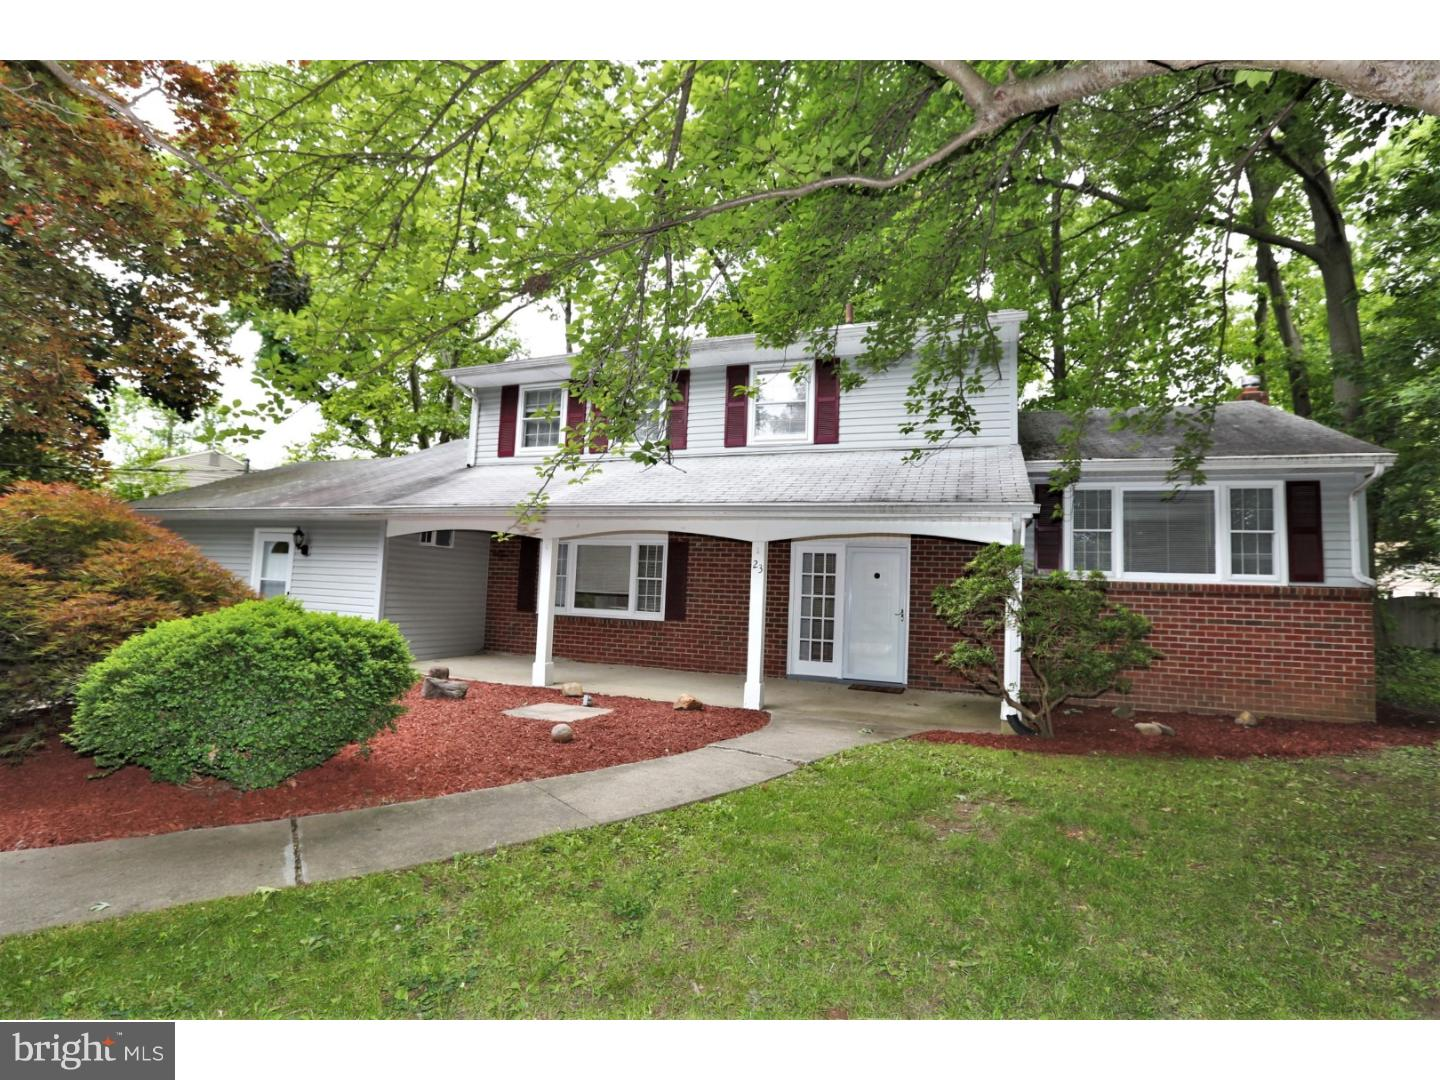 Single Family Home for Sale at 23 EXETER Road East Windsor, New Jersey 08520 United StatesMunicipality: East Windsor Township